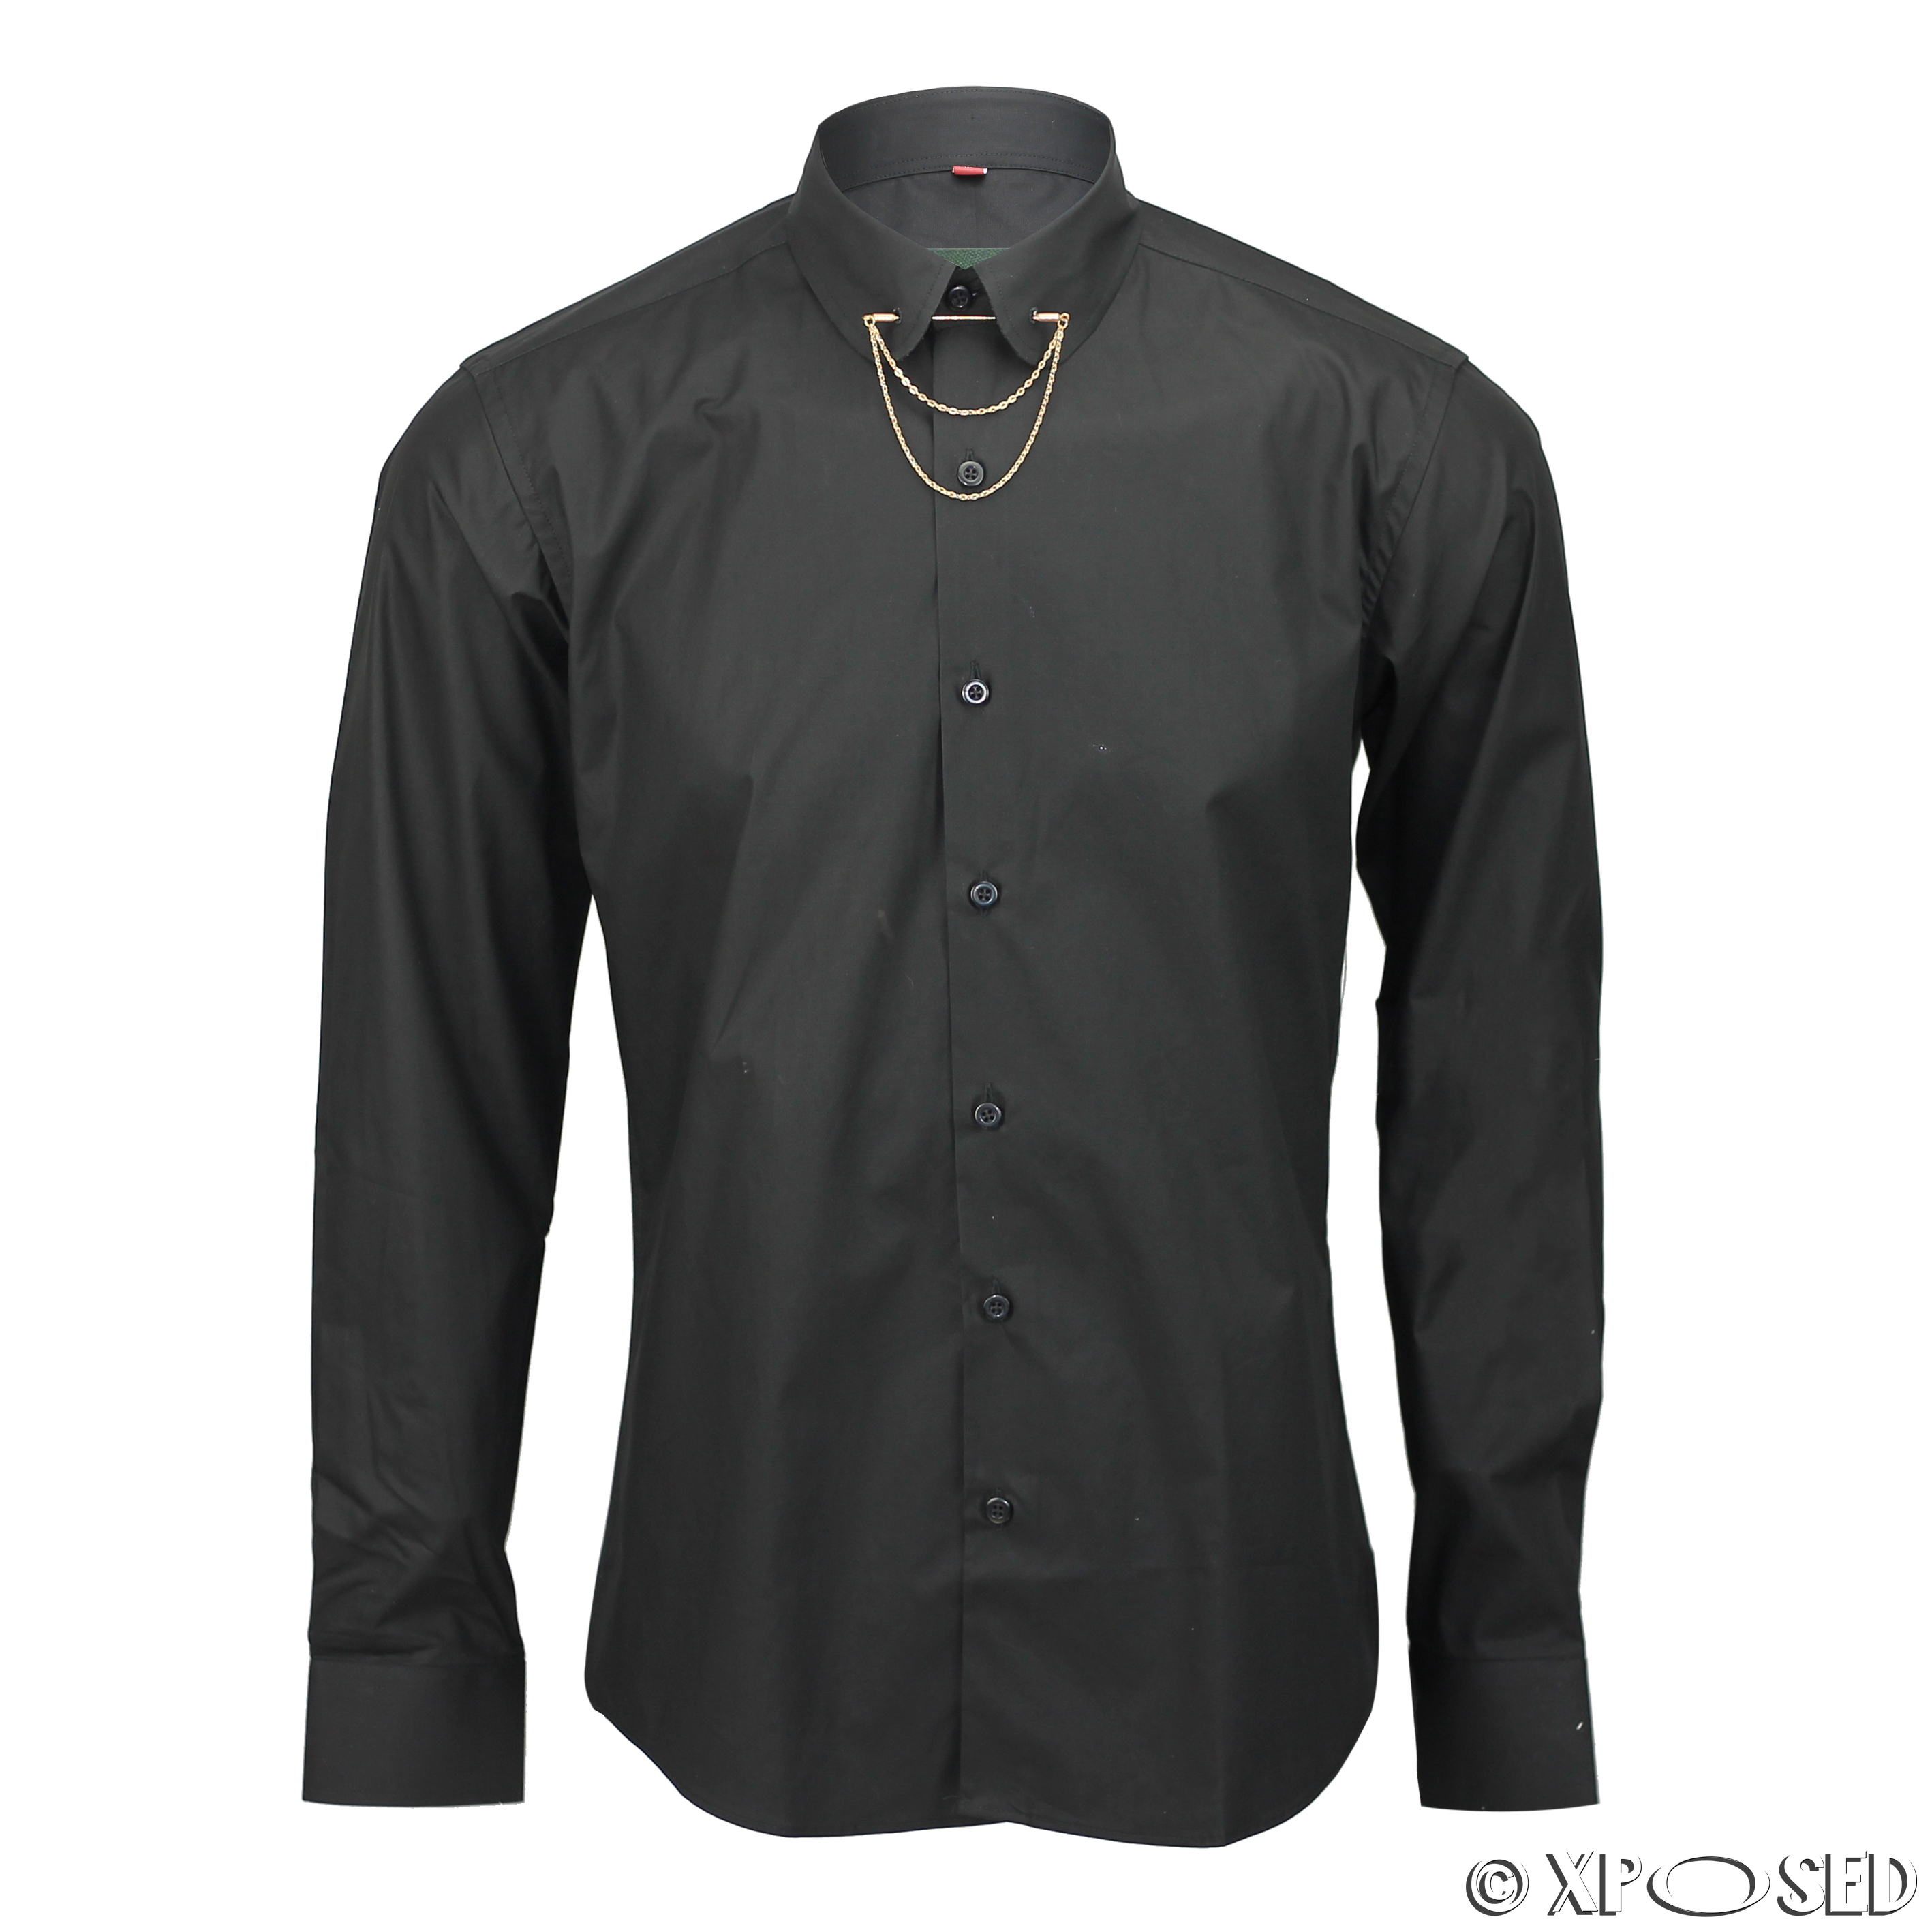 The banded collar dress shirt comes in a variety of styles like mens mandarin collar shirts and the round collar dress shirt. If you are looking for something that is a little different than the traditional men's dress shirts, consider collarless dress shirts.